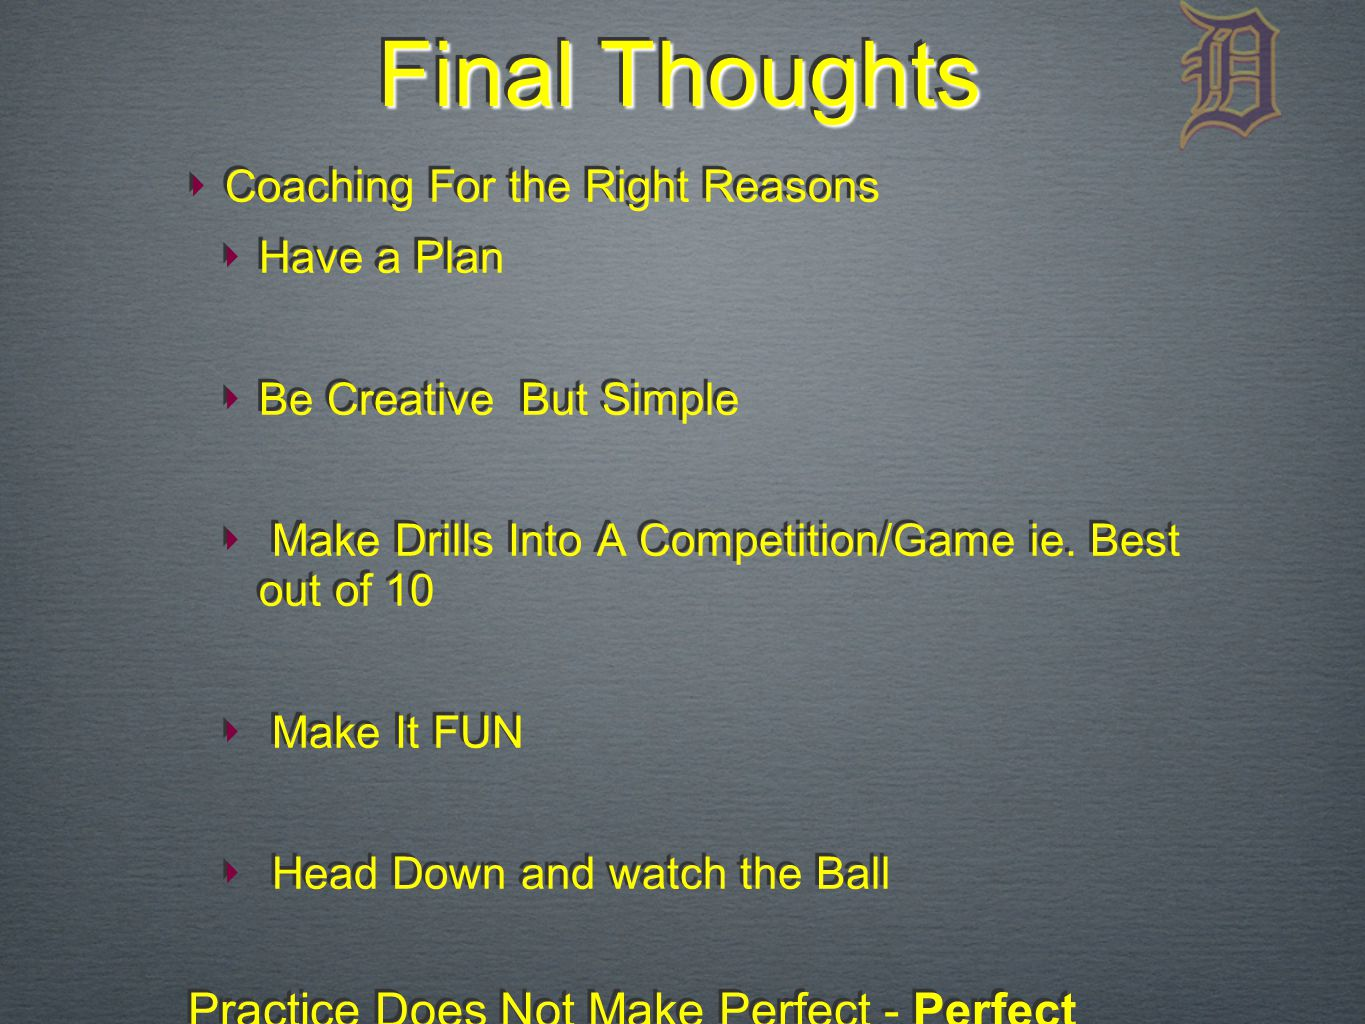 Final Thoughts ‣ Coaching For the Right Reasons ‣ Have a Plan ‣ Be Creative But Simple ‣ Make Drills Into A Competition/Game ie.